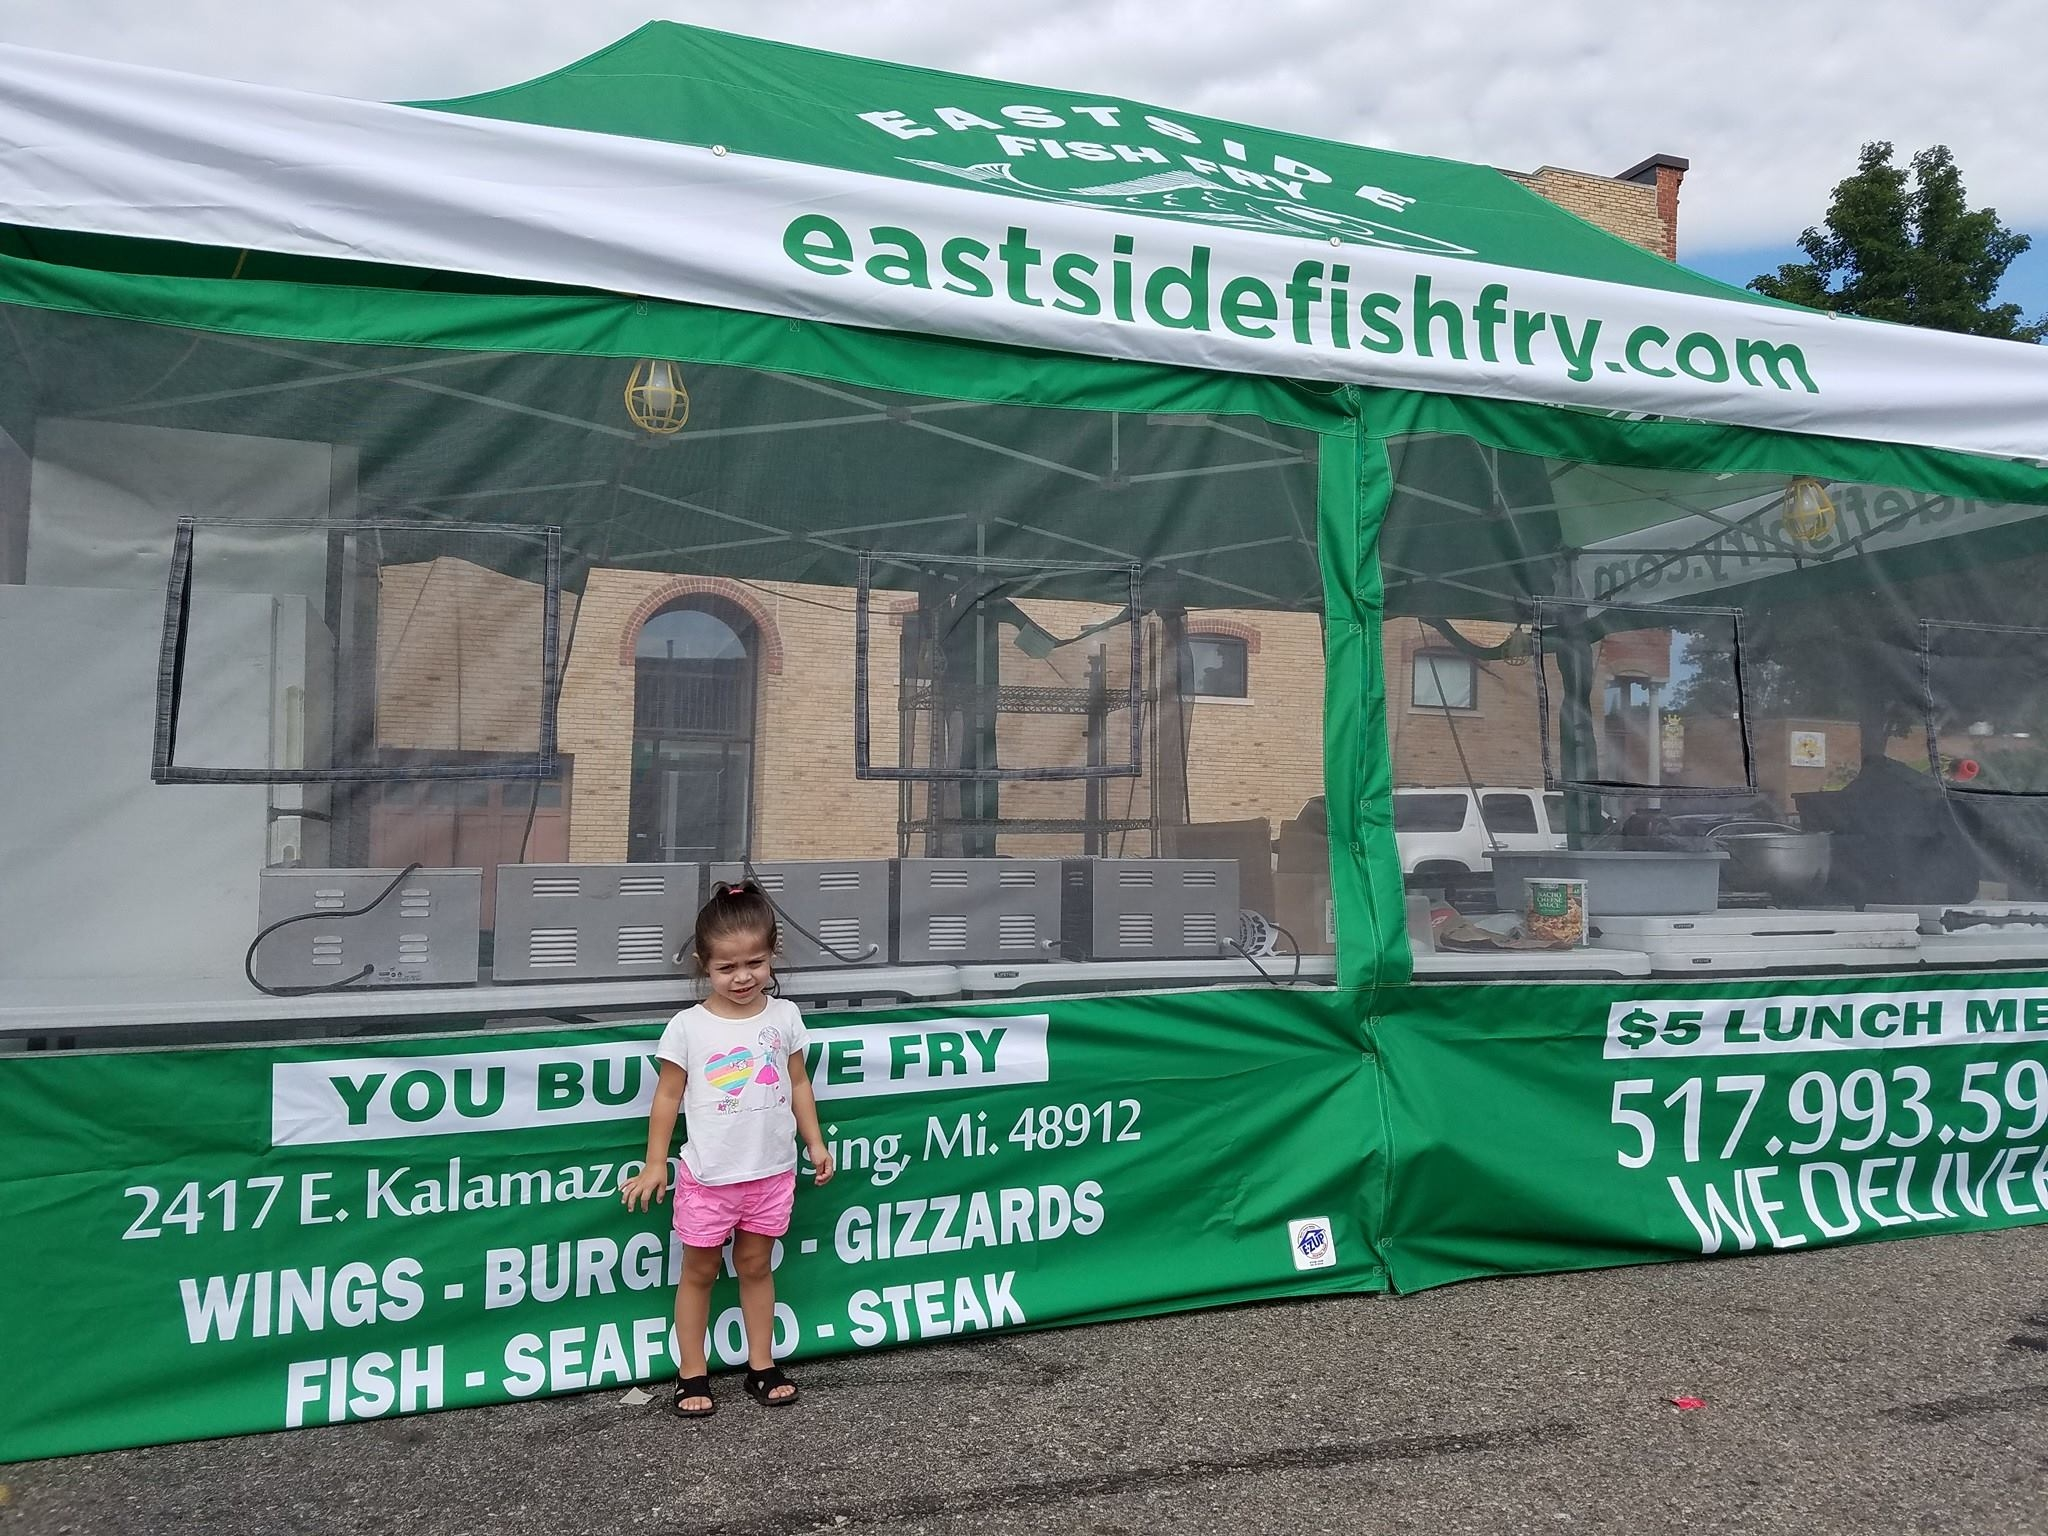 Eastside fish fry grill coupons near me in lansing for Eastside fish fry menu